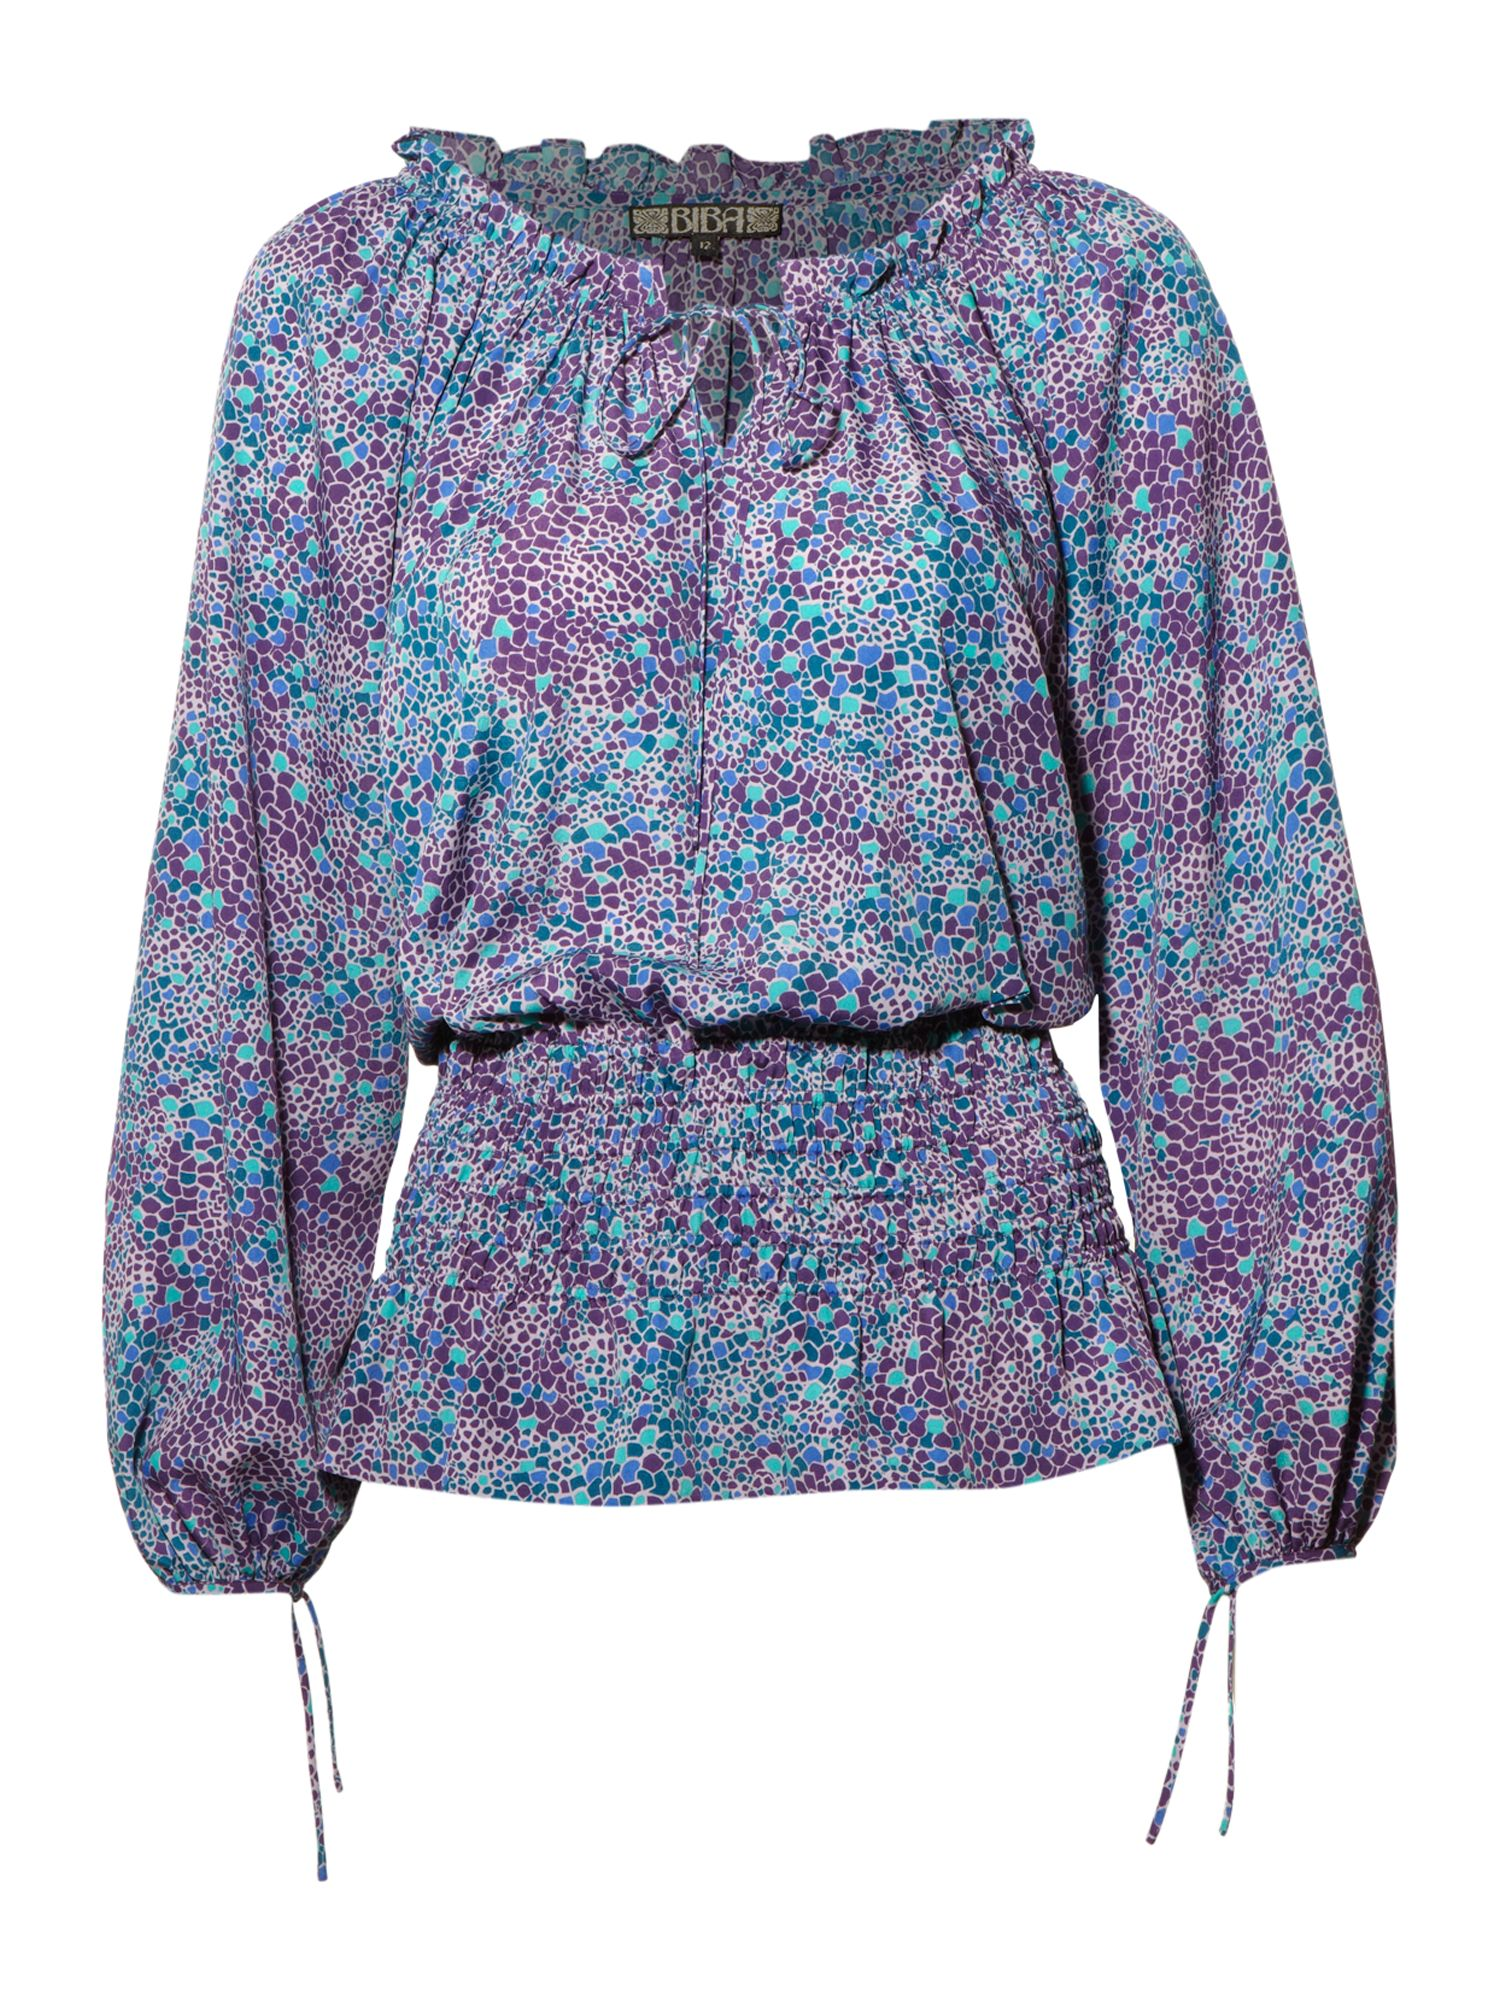 Mosaic print peasant blouse, Multi-Coloured